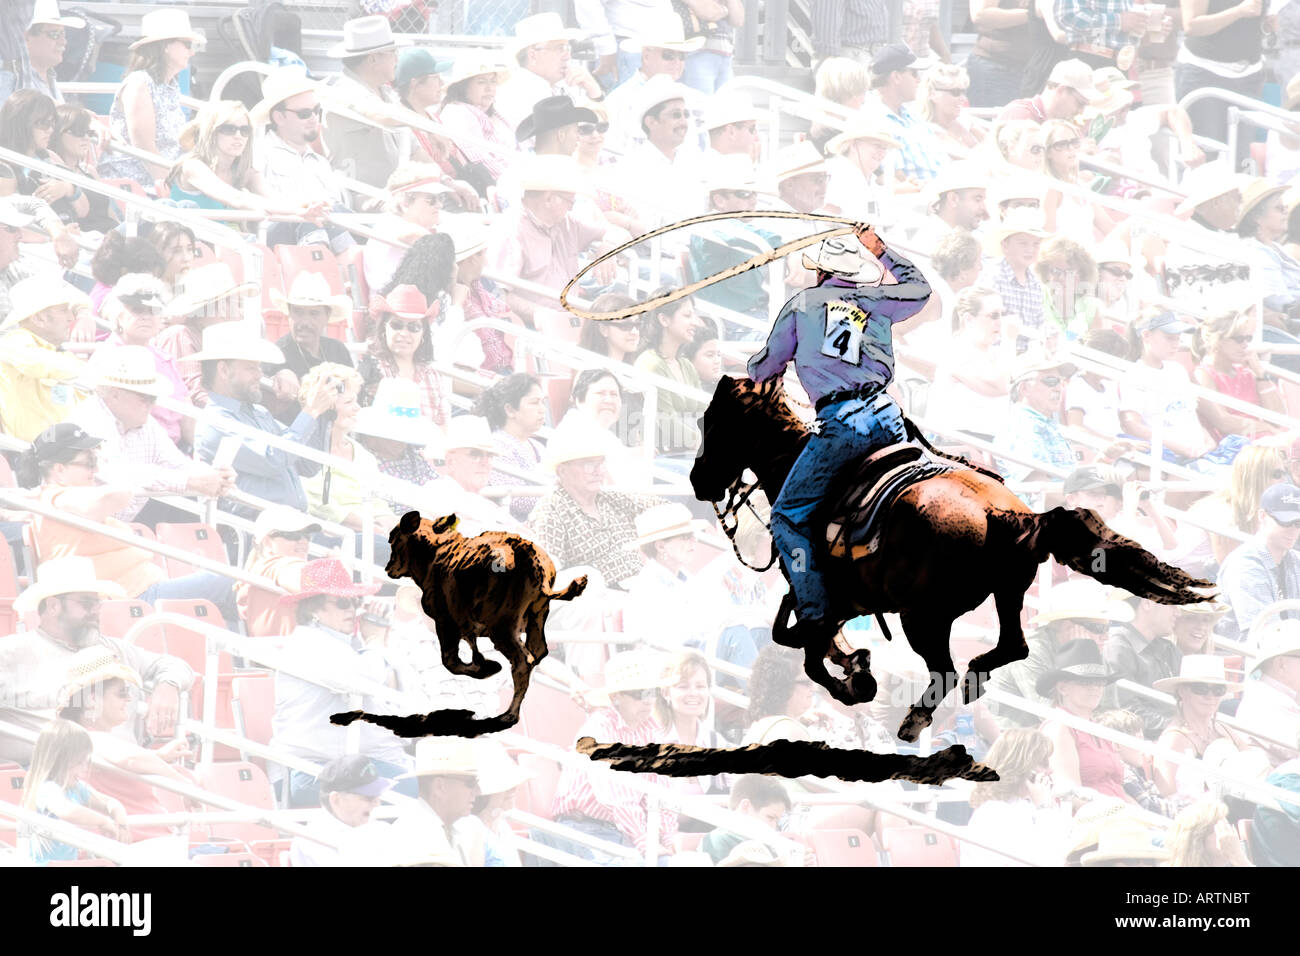 Concept image of rodeo scene with cutout of cowboy chasing after calf with lasso against background of crowd in - Stock Image